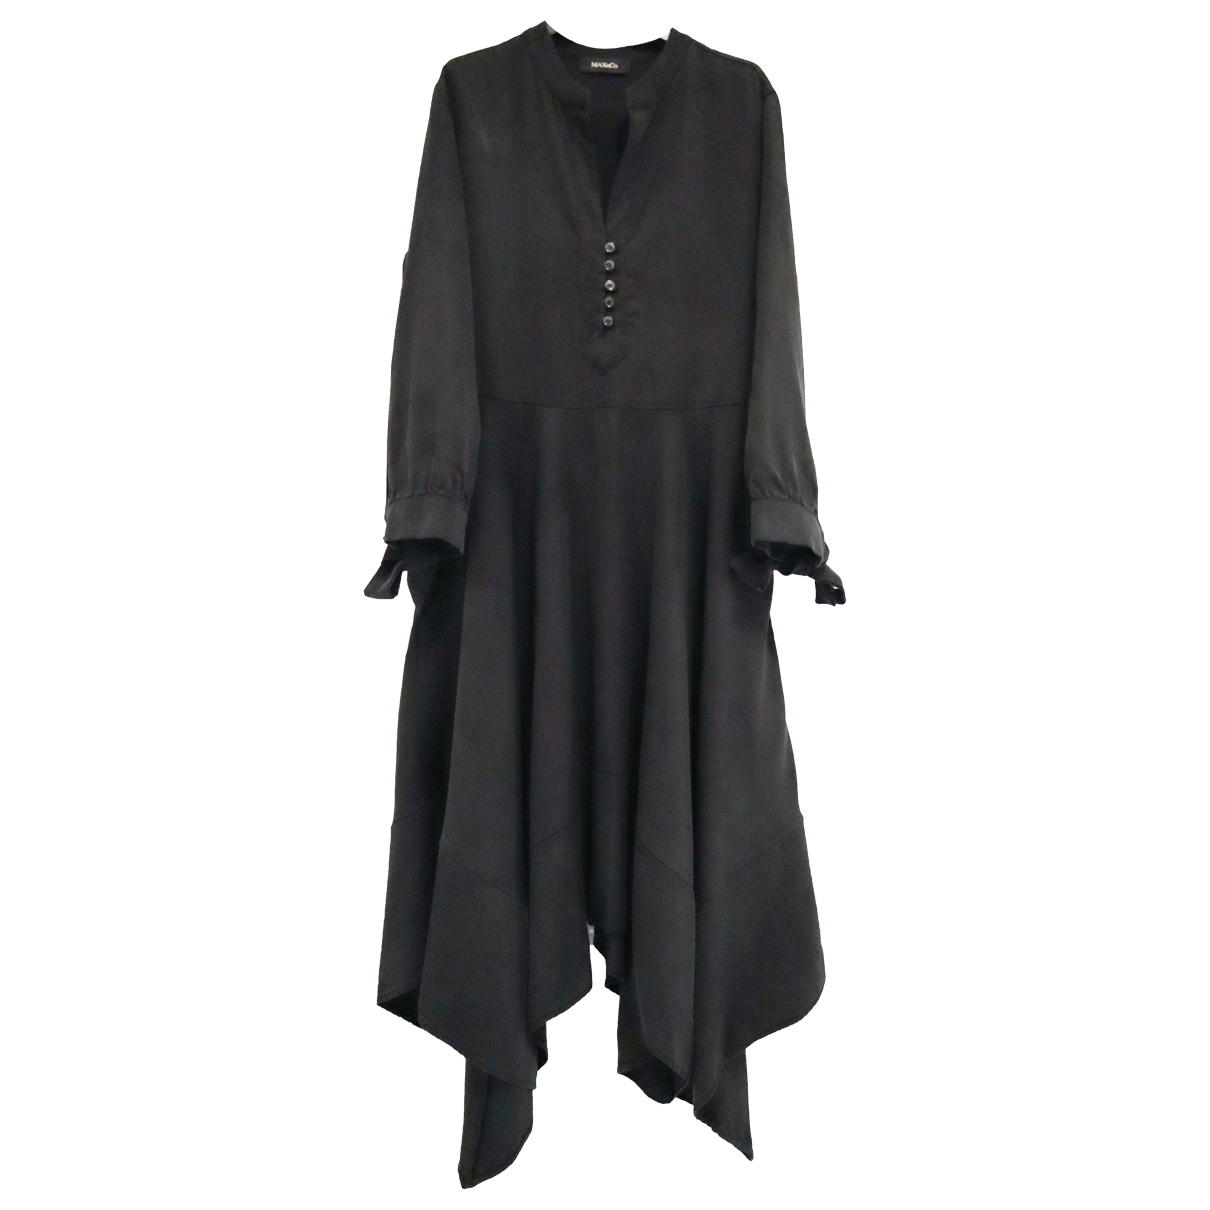 Max & Co \N Black Cotton dress for Women 36 IT